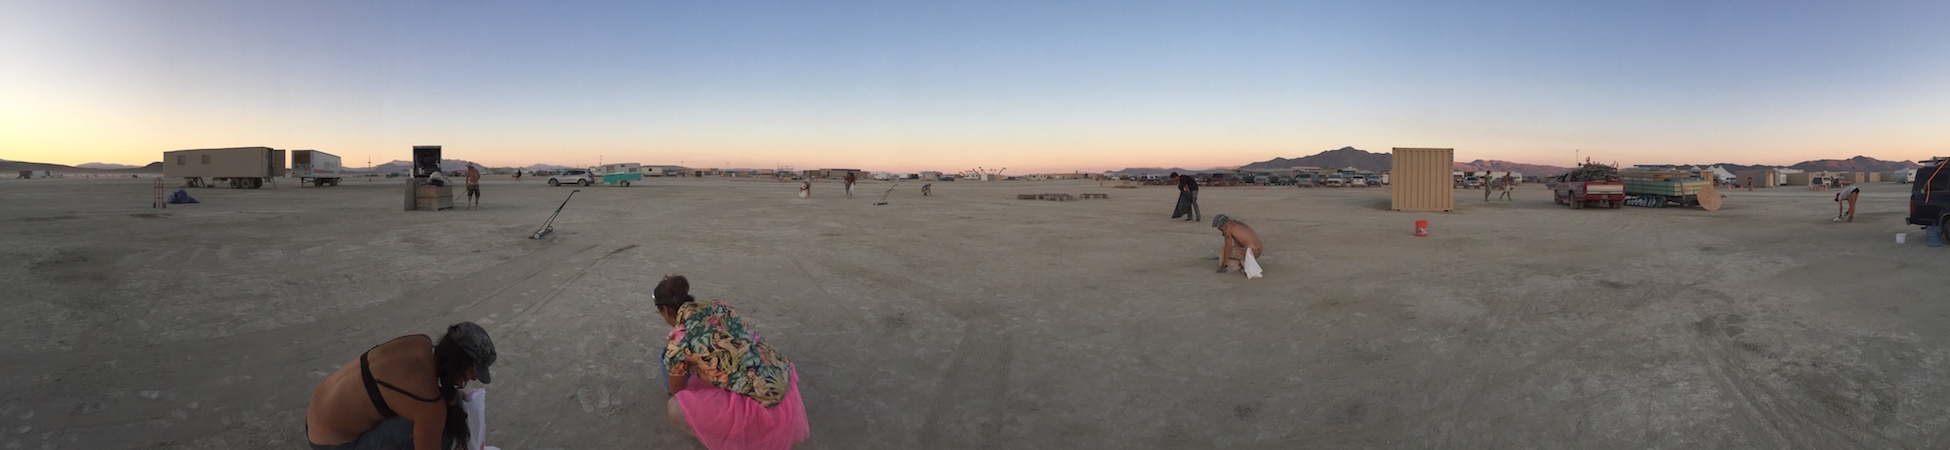 The Playa is empty except for the activity of a few.